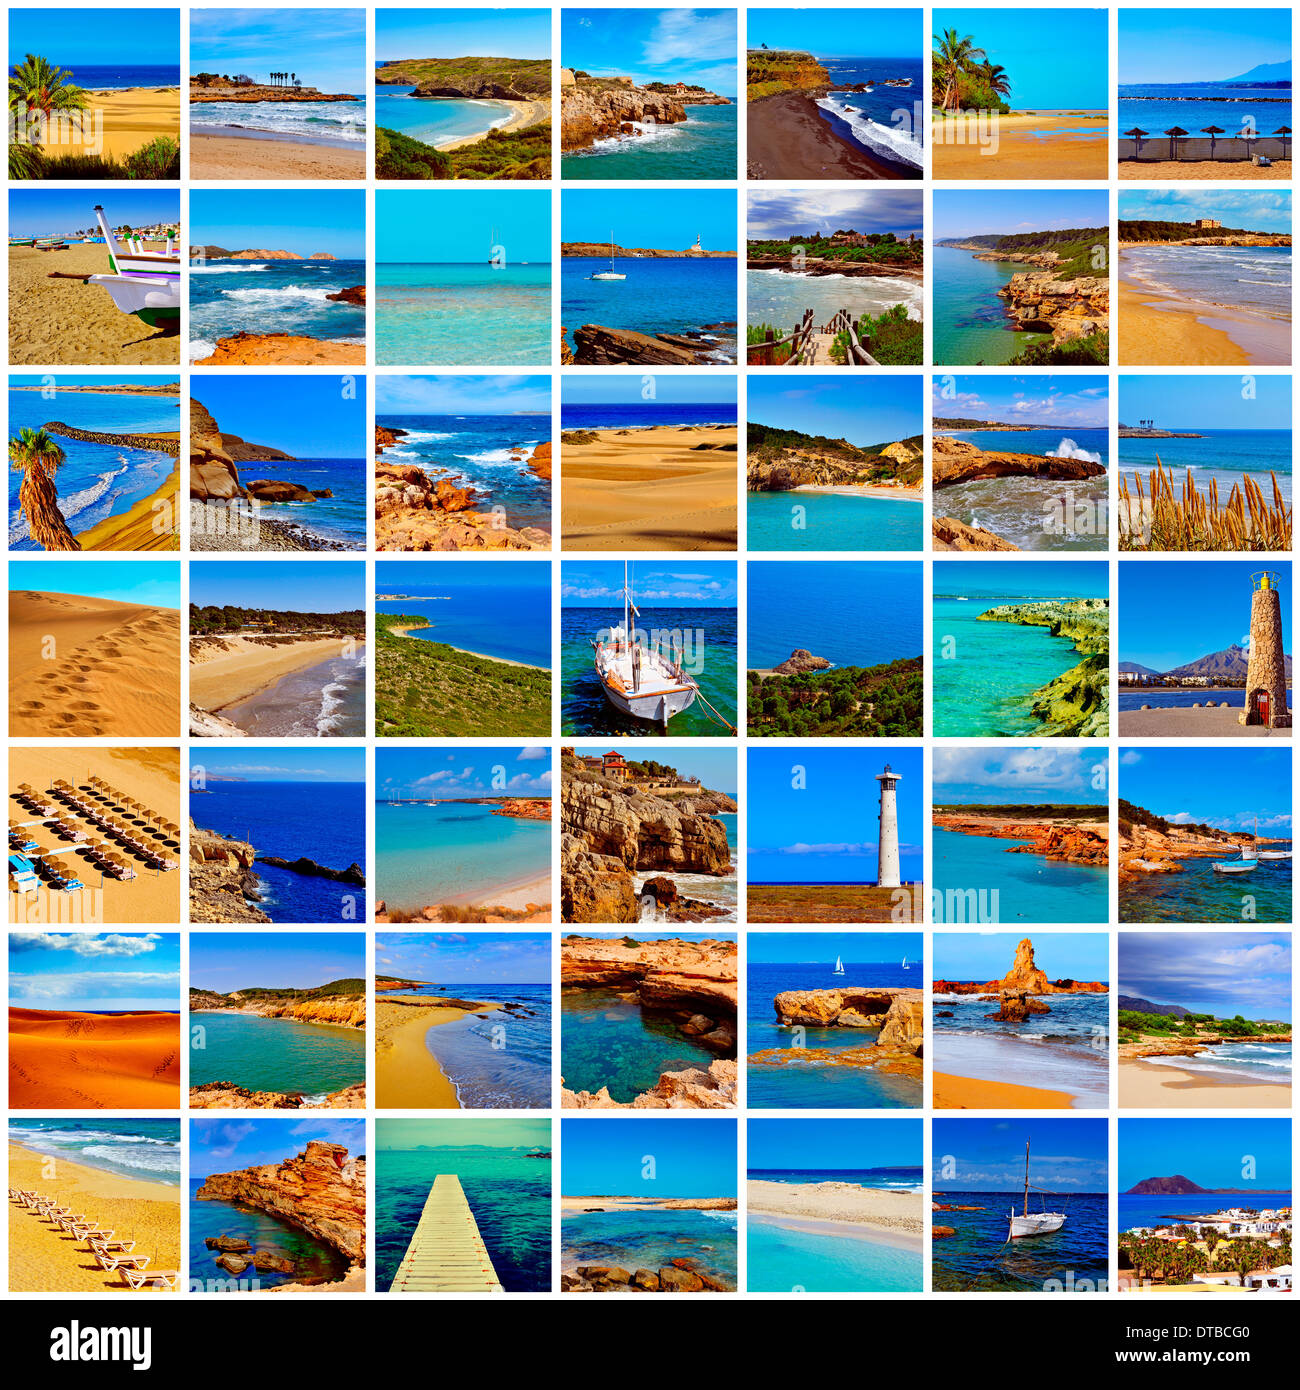 a collage of different spanish beaches, in the mainland and in the Balearic Islands and the Canary Islands - Stock Image